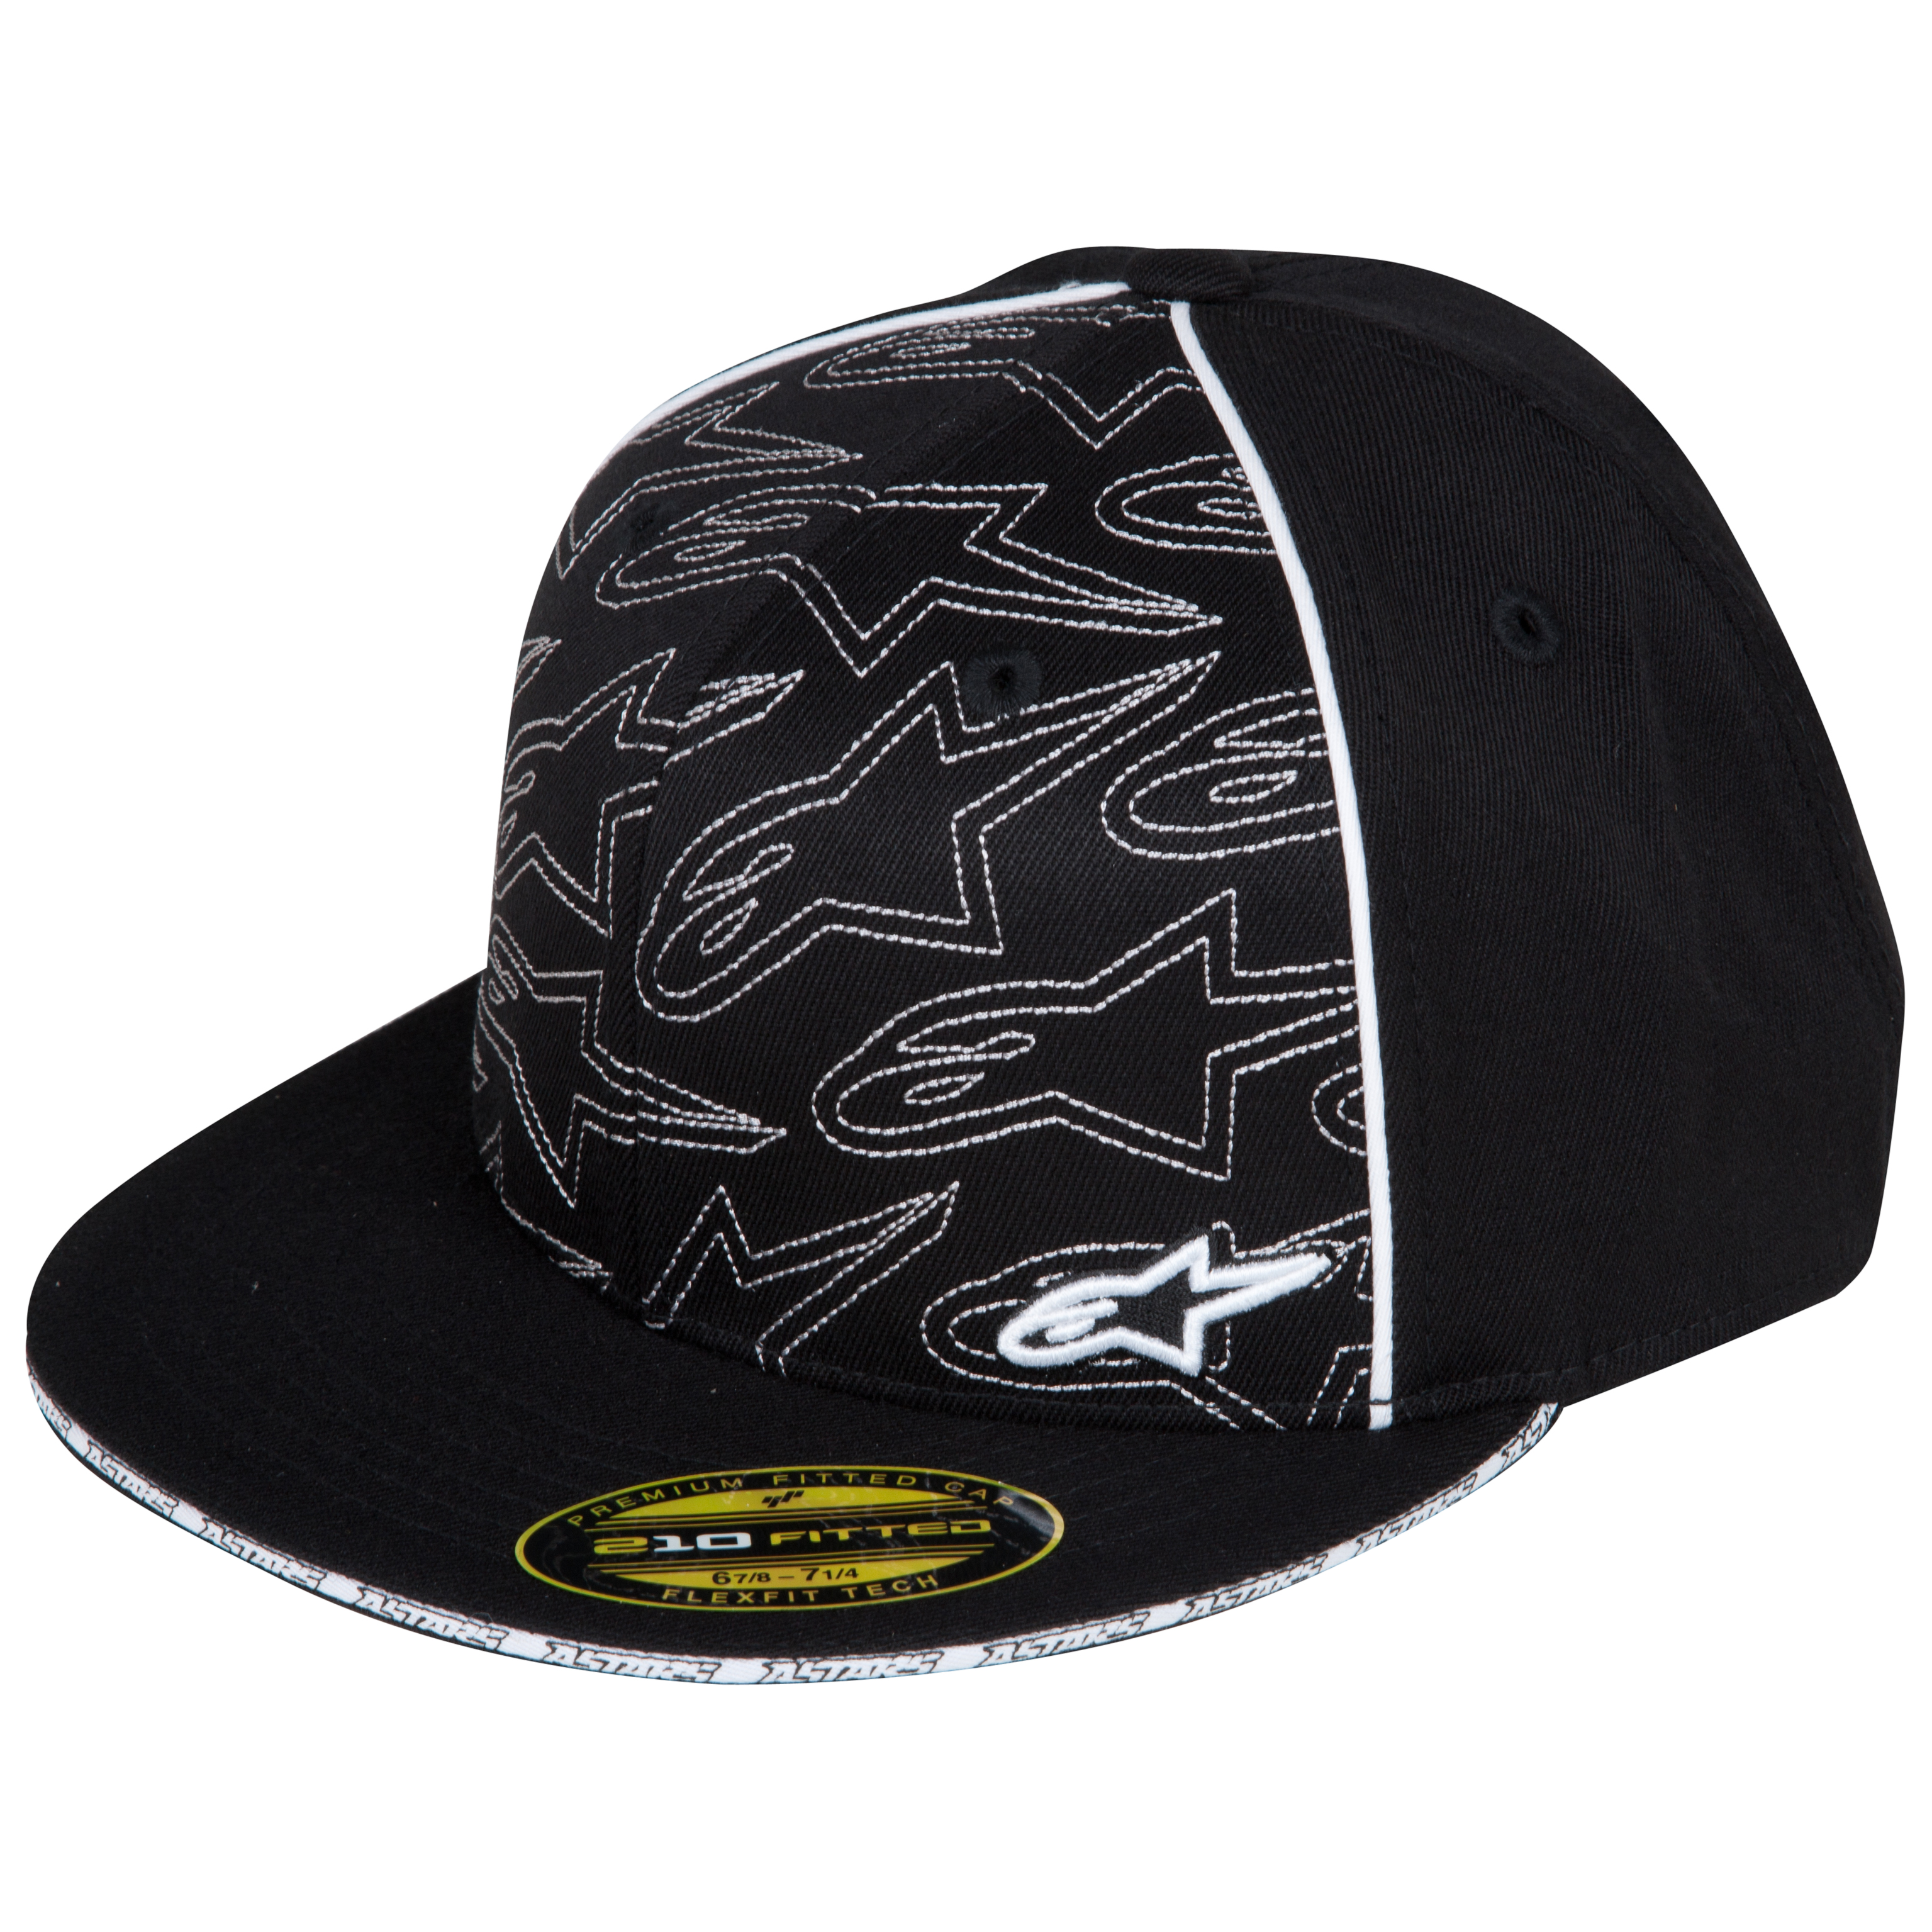 Alpinestar Alpinestars Burnout 210 Flexfit Hat - Black